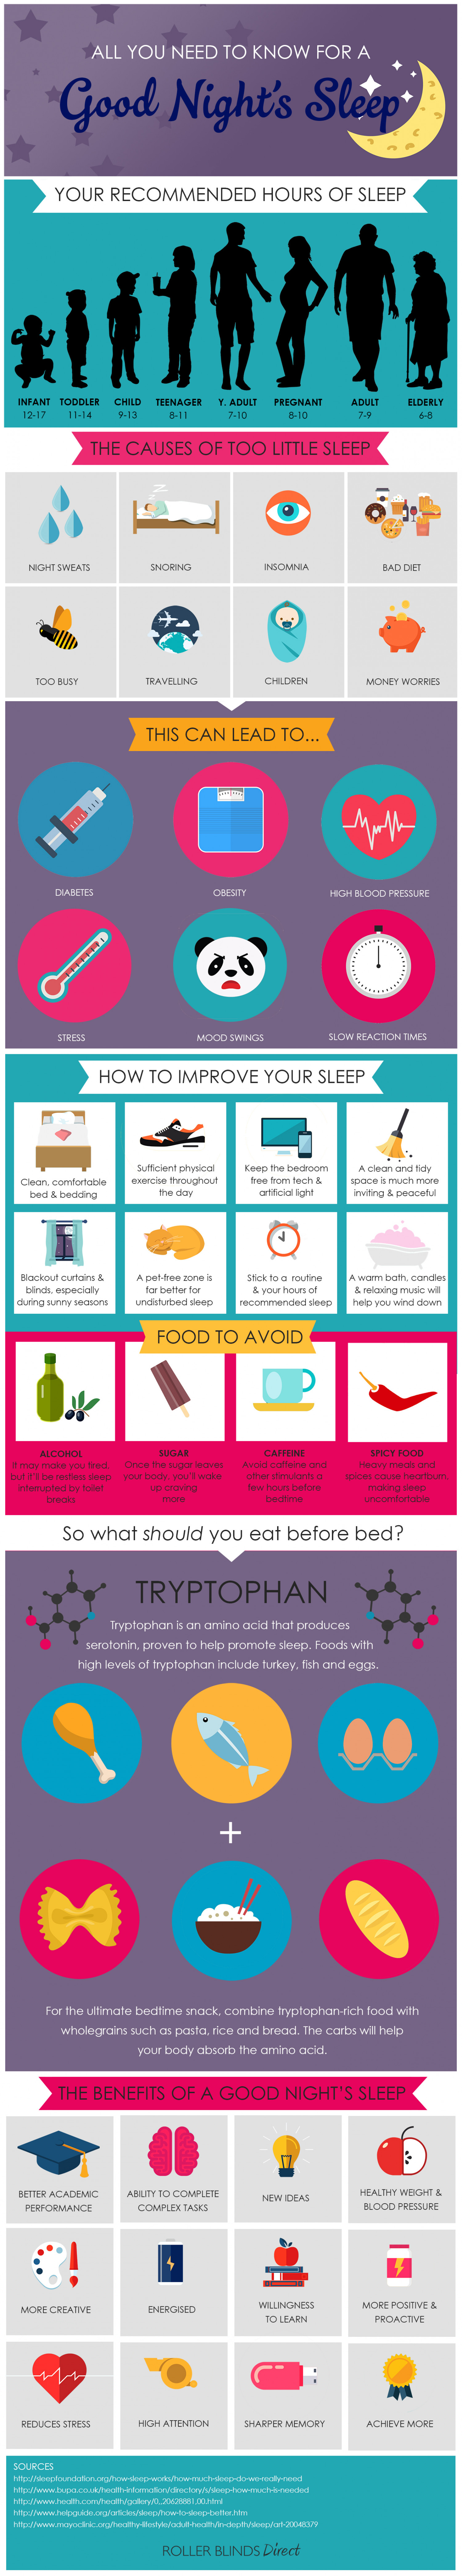 All You Need To Know For A Good Night's Sleep Infographic